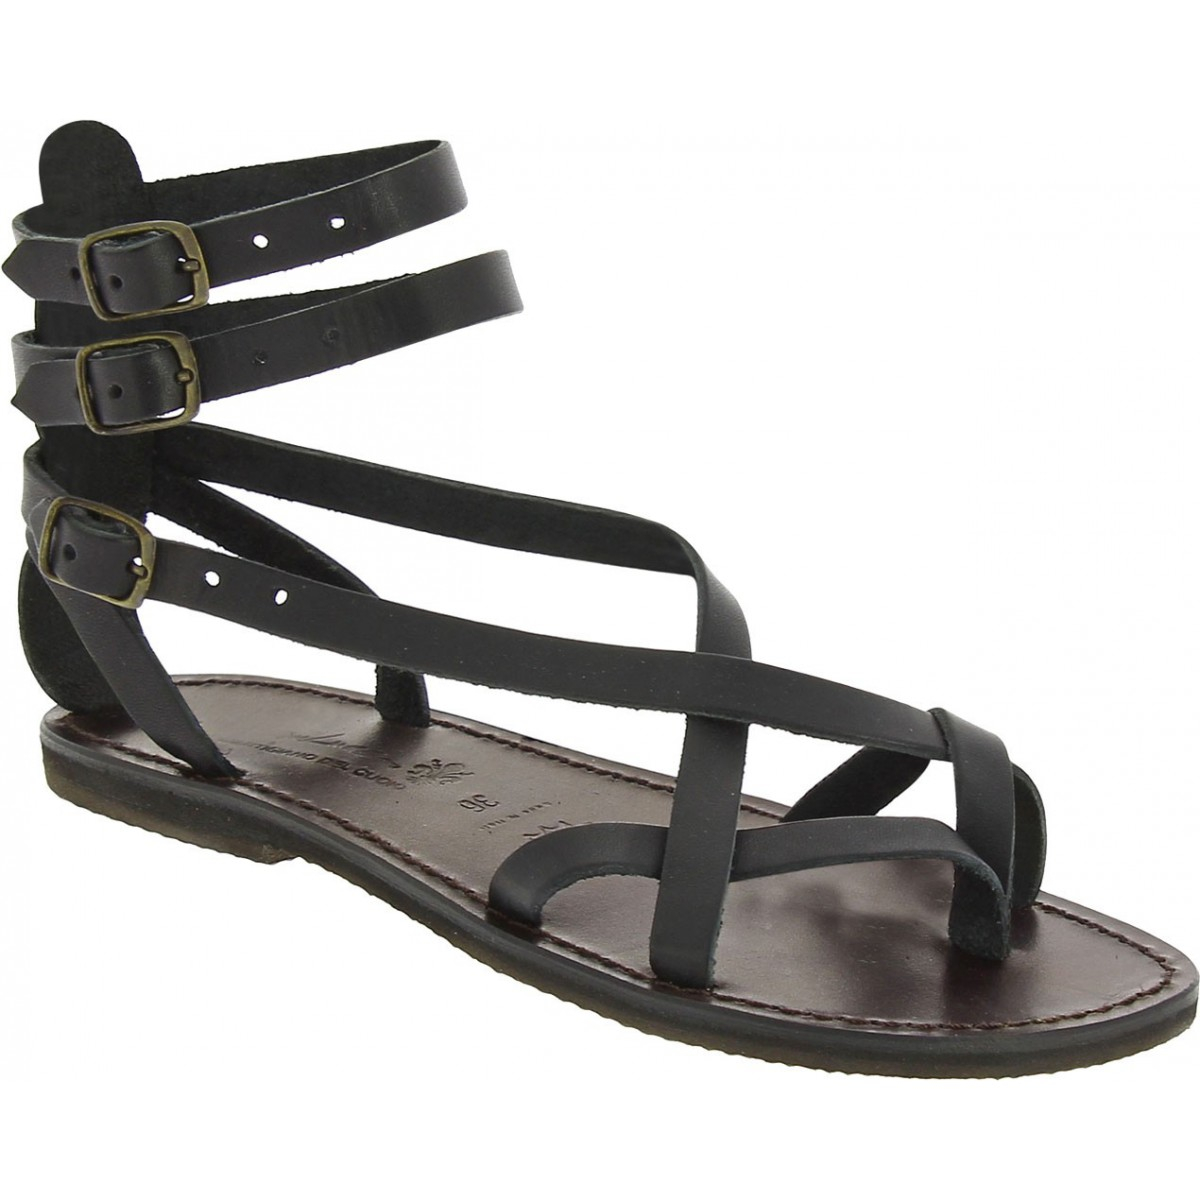 382b7135cc84 Handmade in Italy women s slave sandals in black leather. Loading zoom